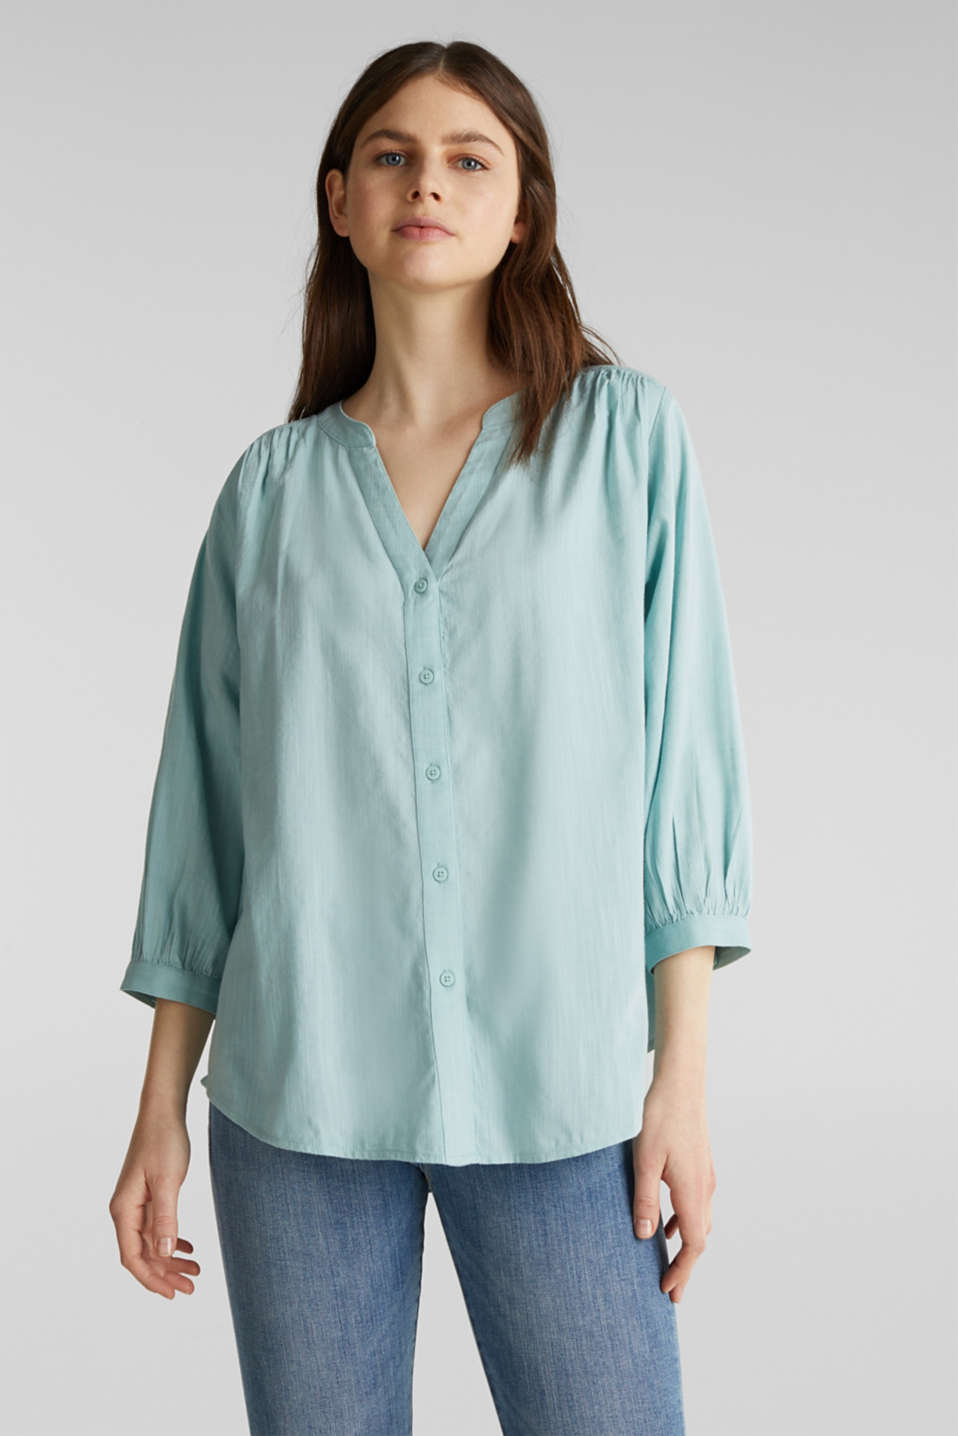 Textured blouse with batwing sleeves, LIGHT AQUA GREEN, detail image number 0